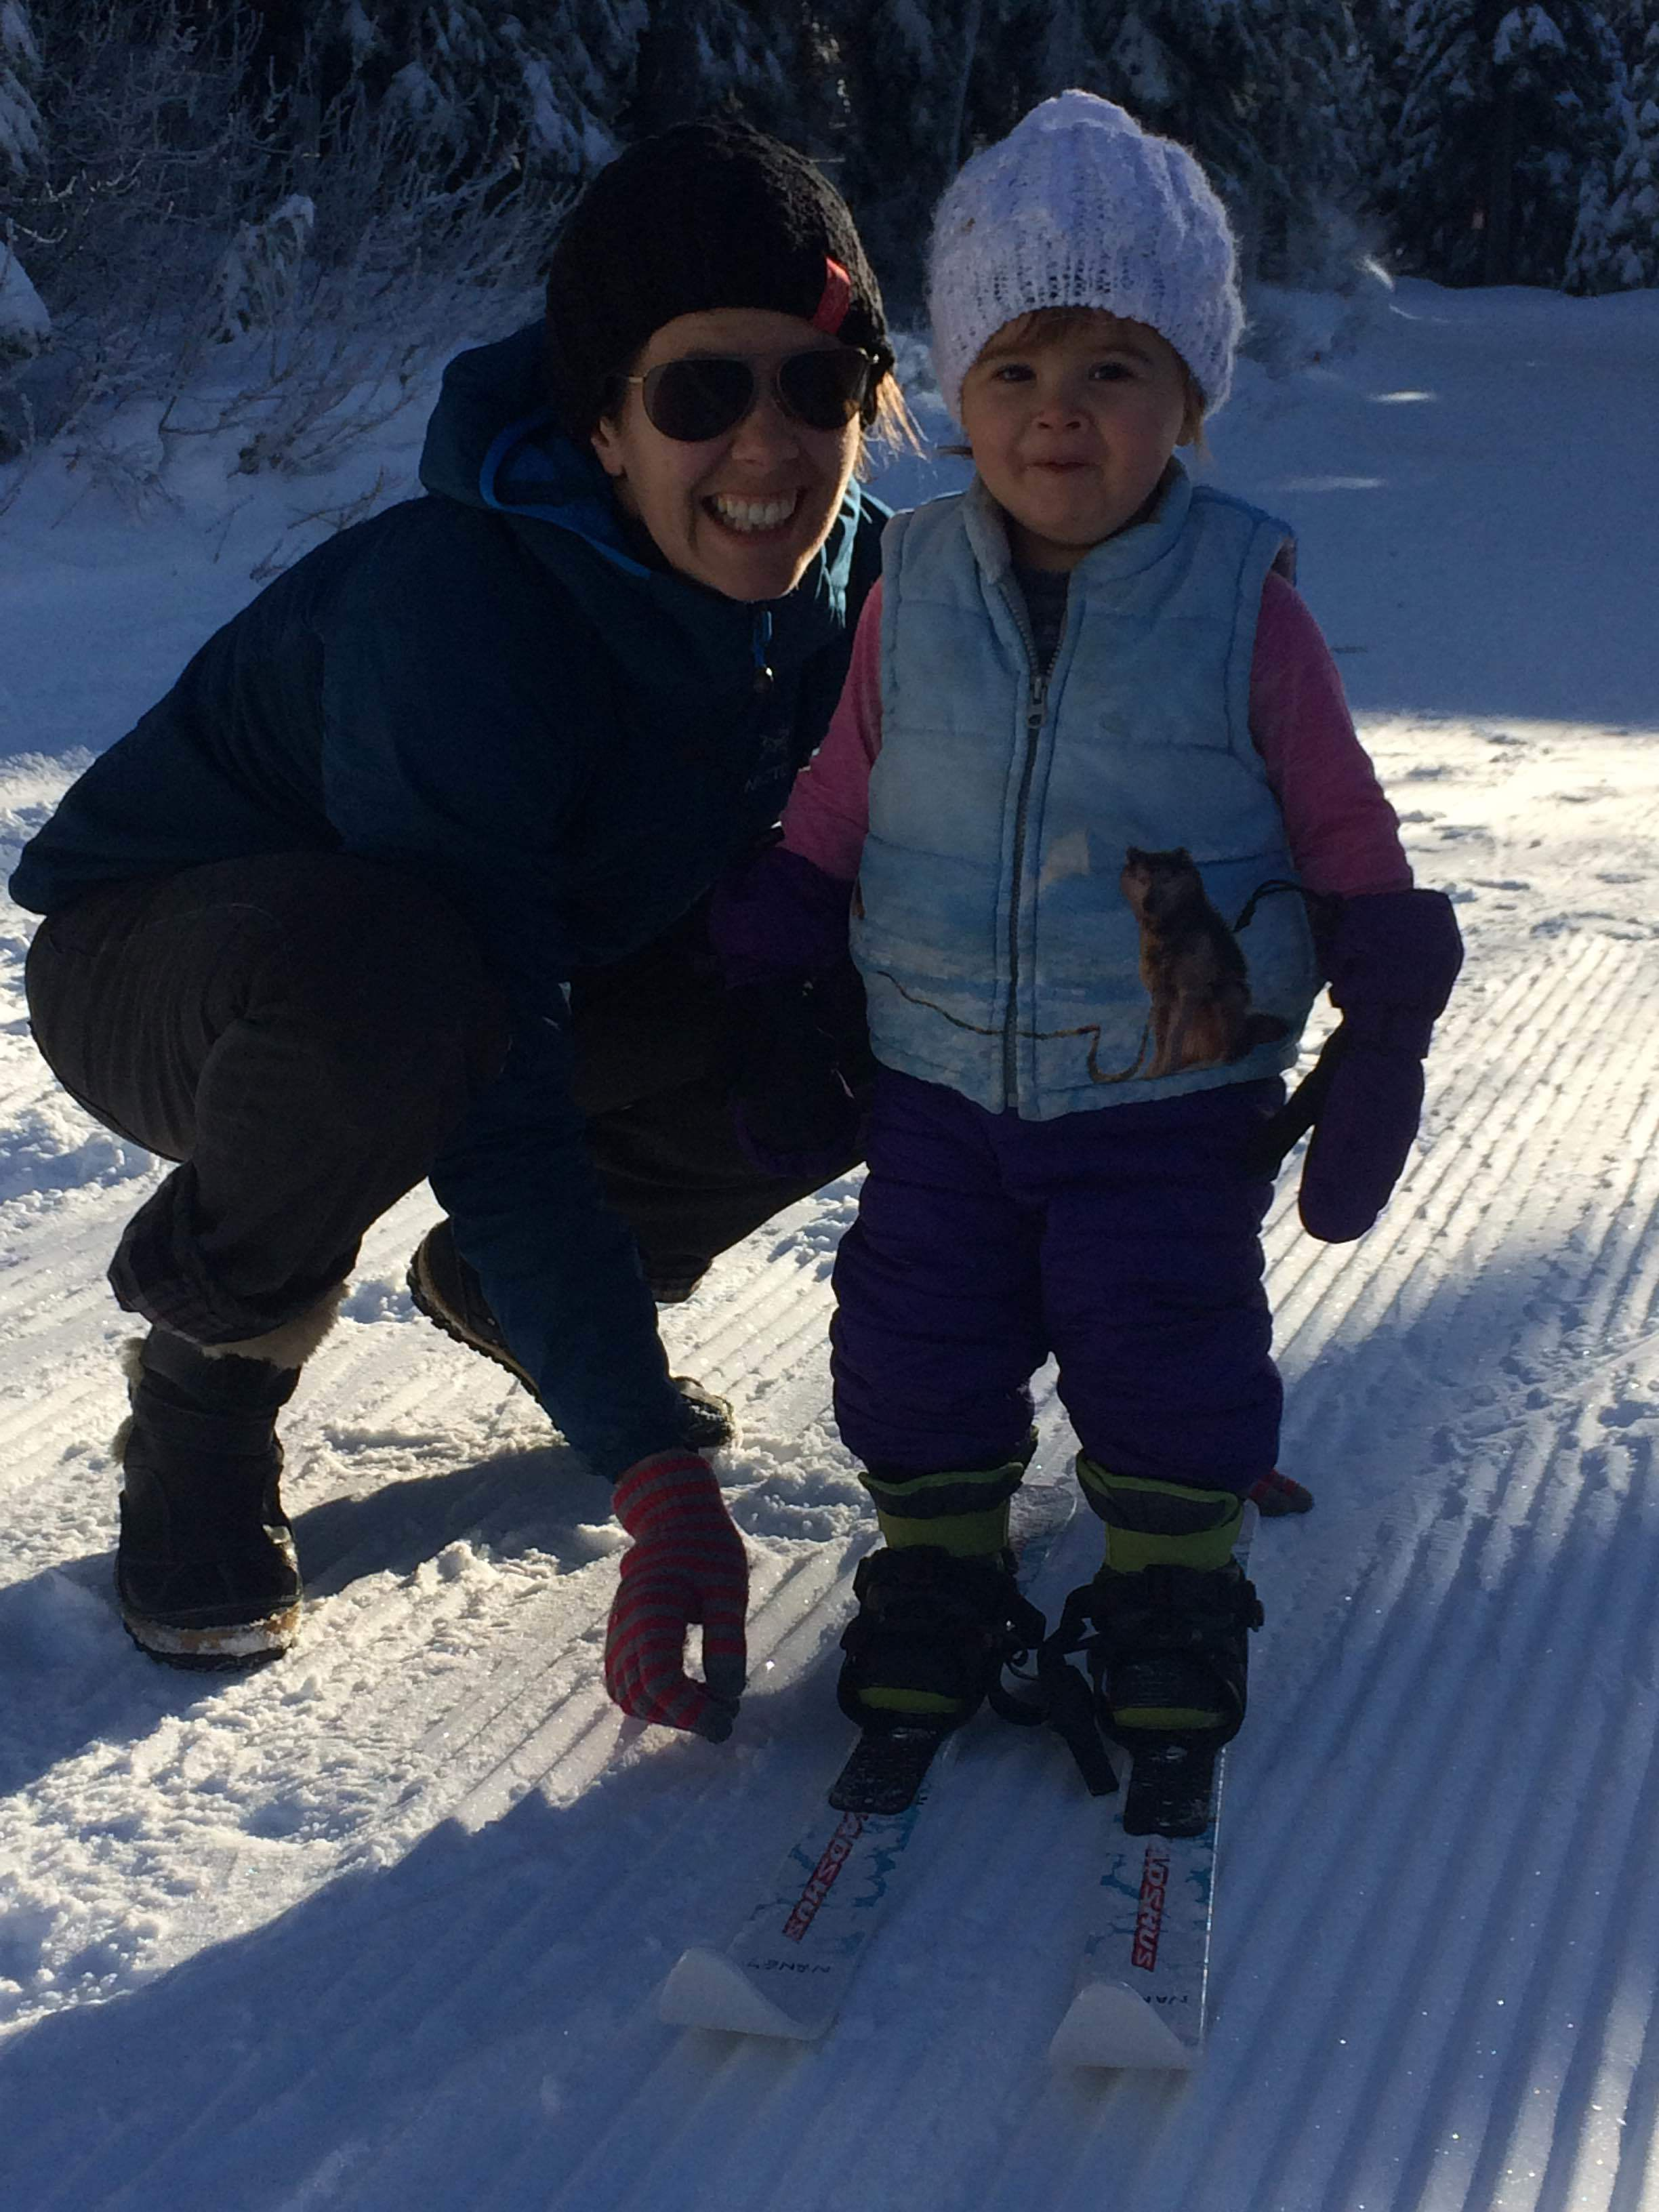 I figured getting Fiona to stand on her skis would be a win, but she was a champ!